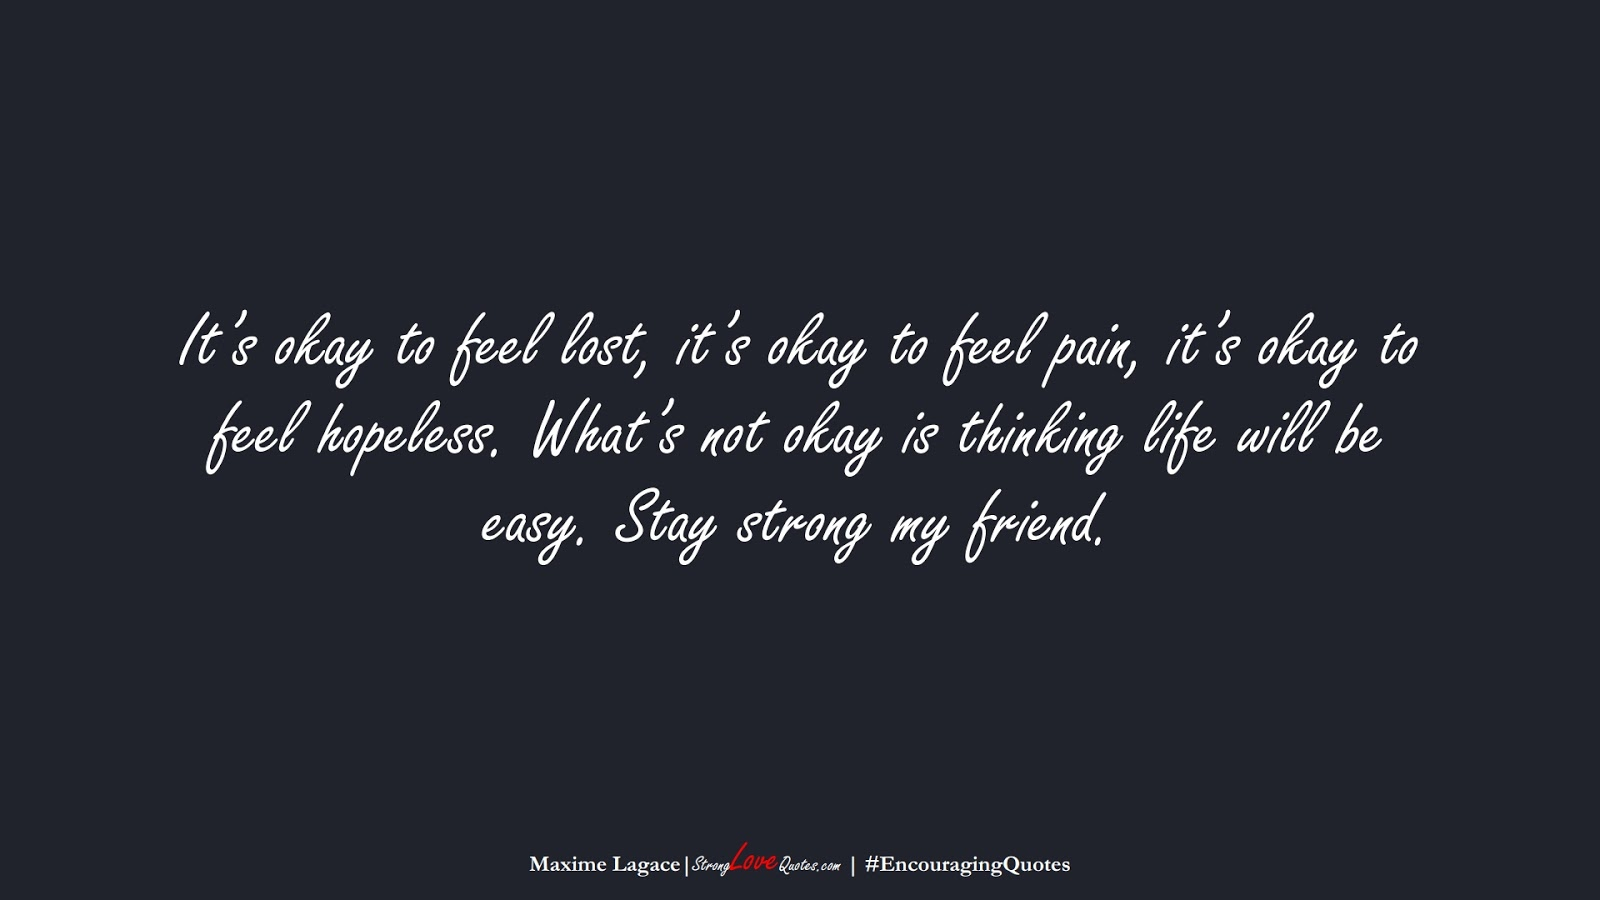 It's okay to feel lost, it's okay to feel pain, it's okay to feel hopeless. What's not okay is thinking life will be easy. Stay strong my friend. (Maxime Lagace);  #EncouragingQuotes